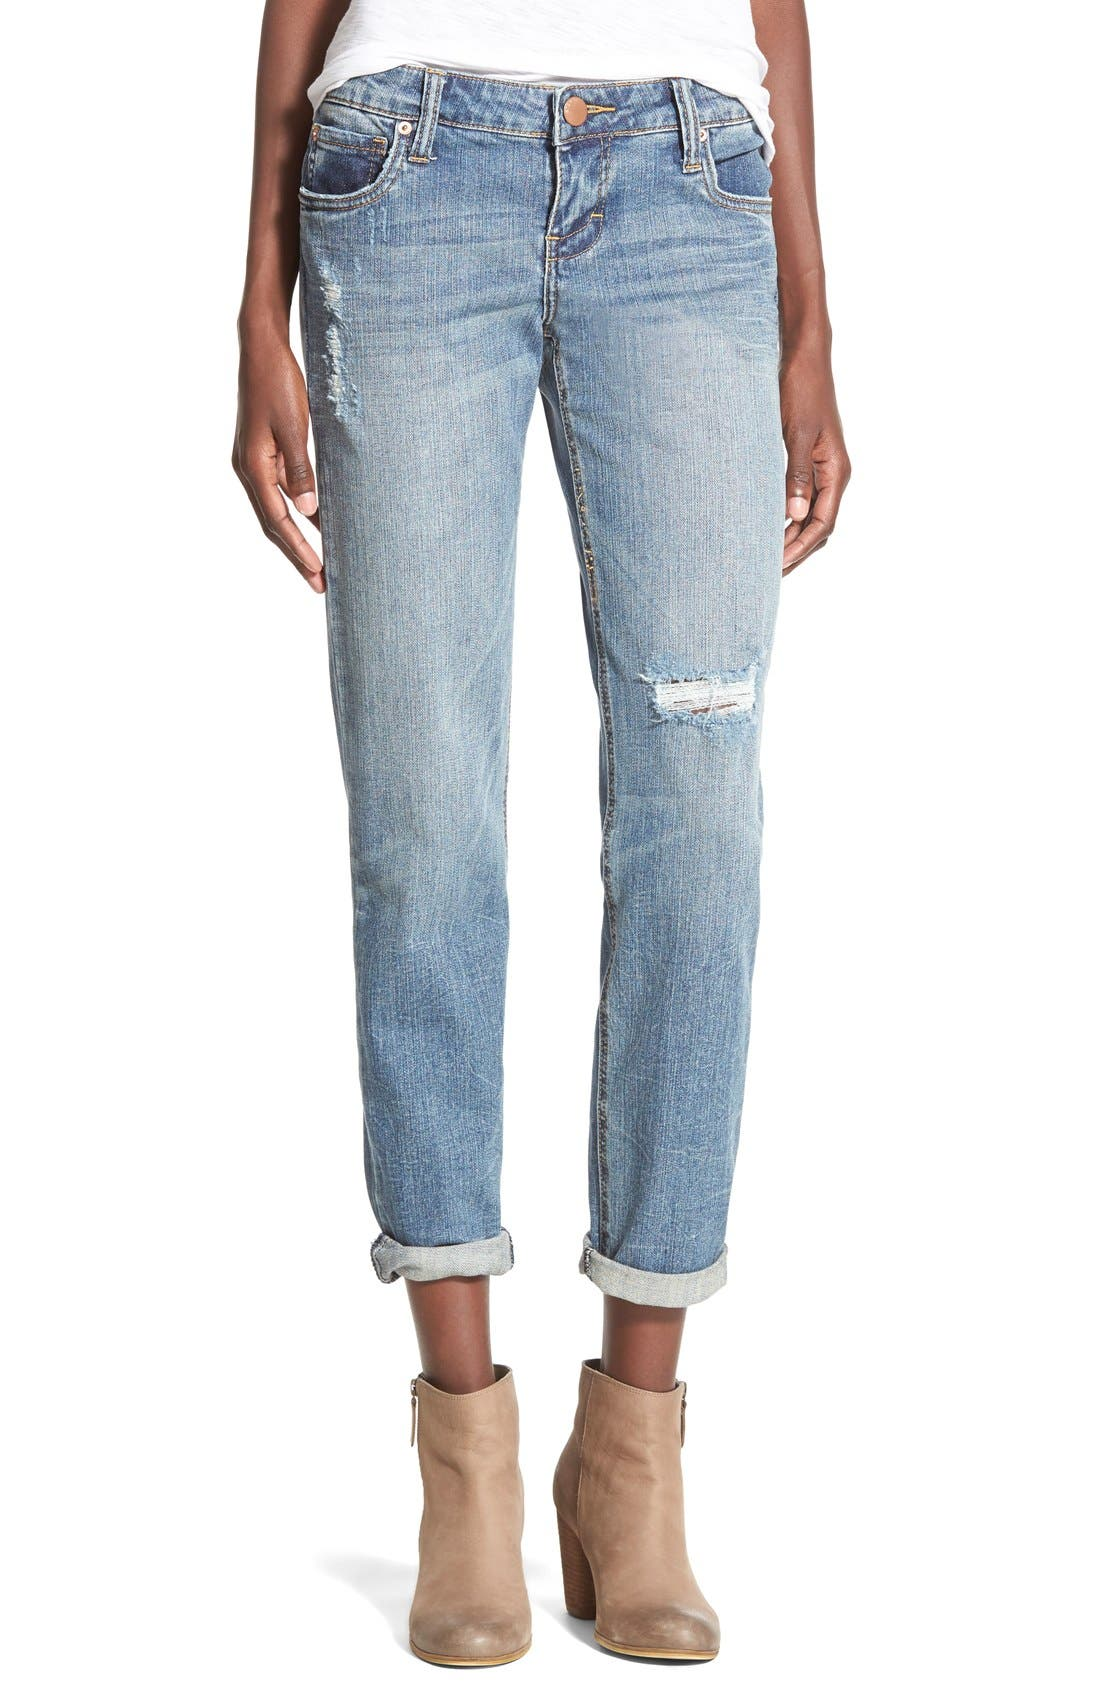 Alternate Image 1 Selected - STS Blue 'Joey' Cropped Boyfriend Jeans